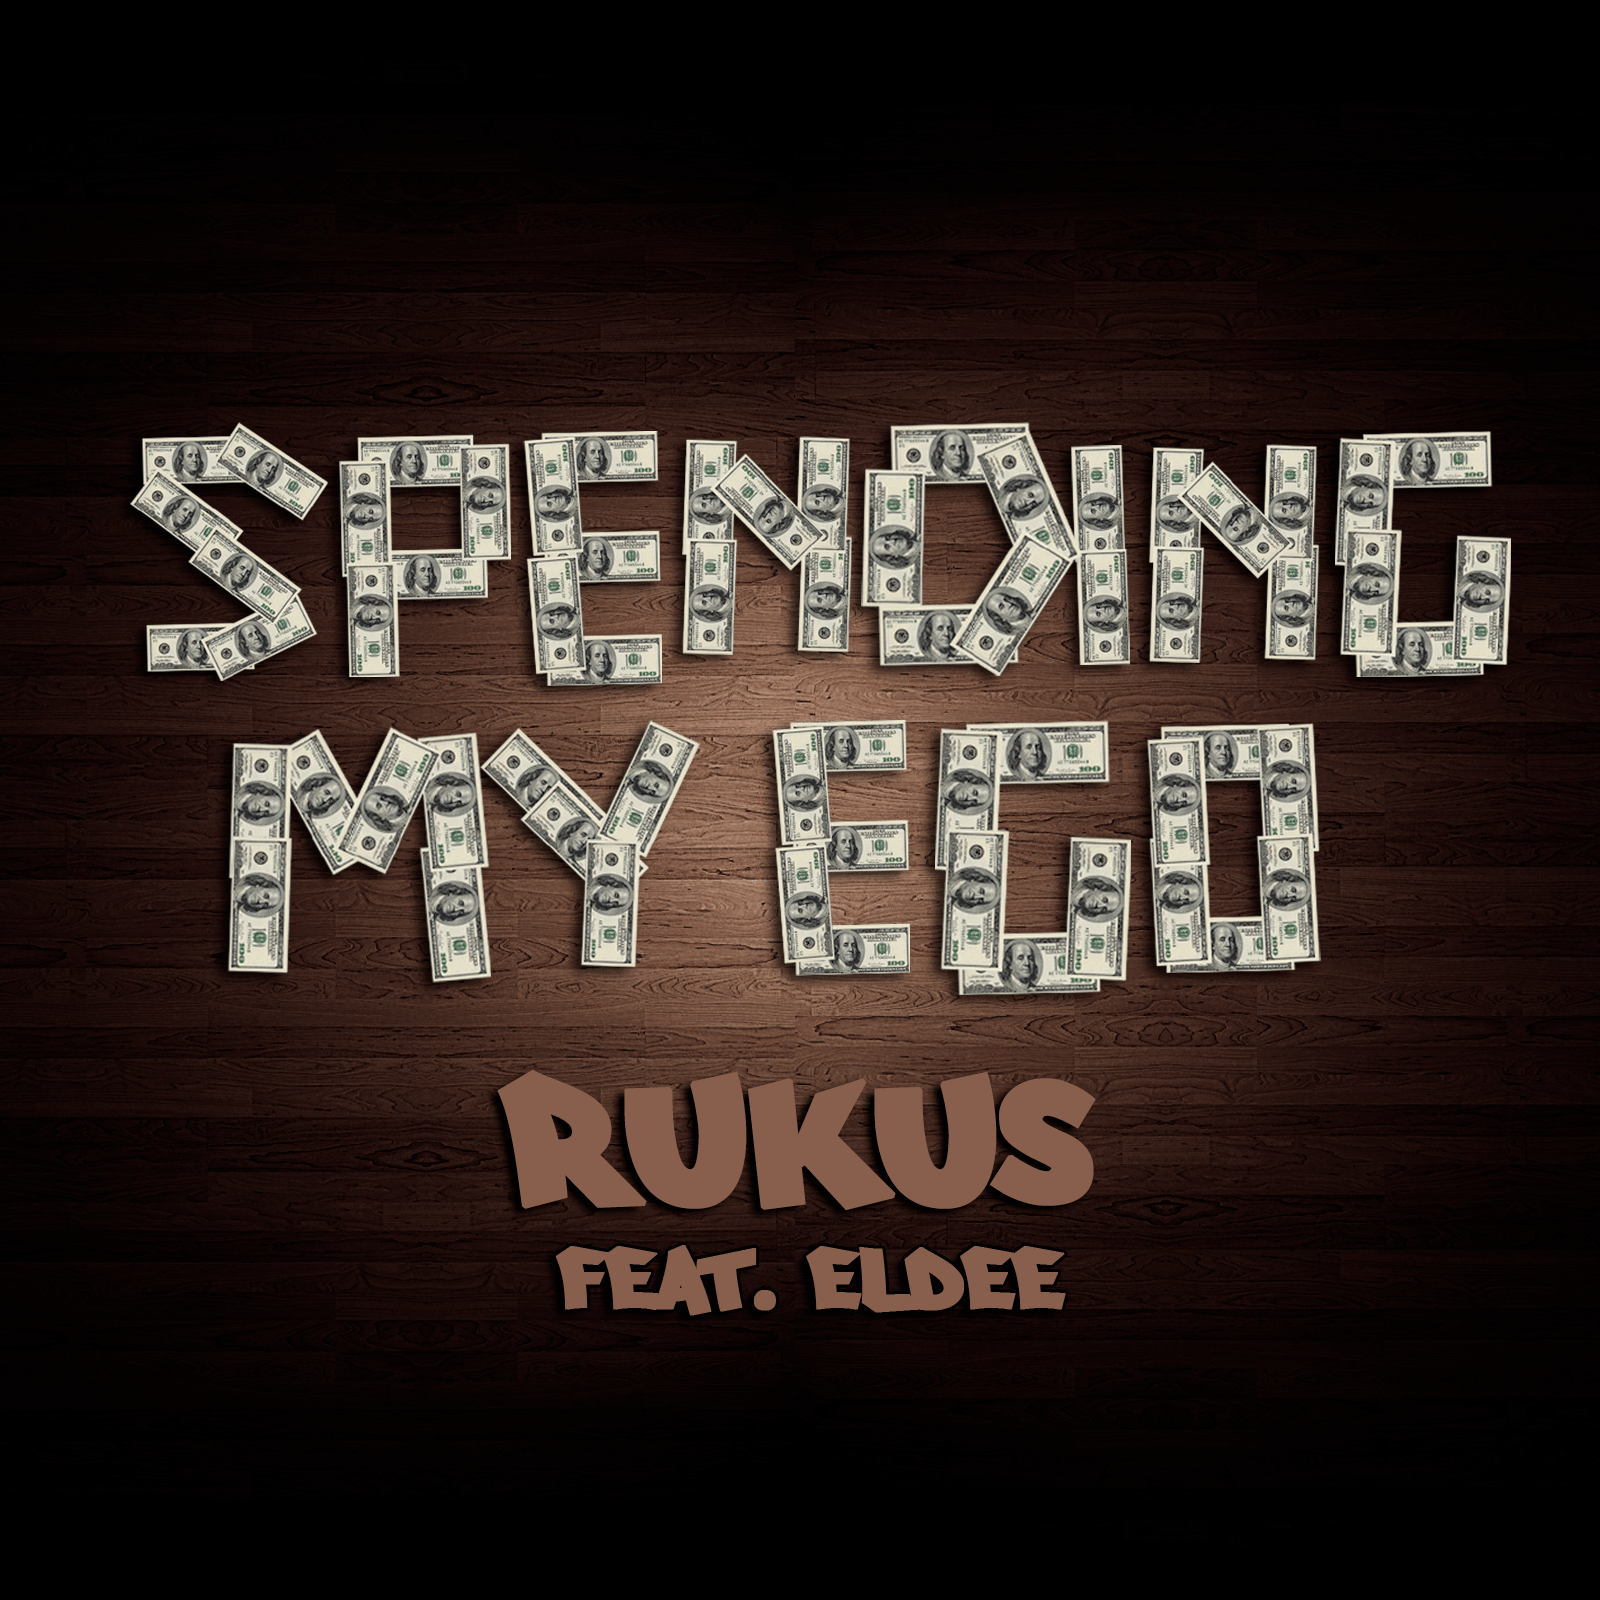 Rukus-spending-my-ego-cover